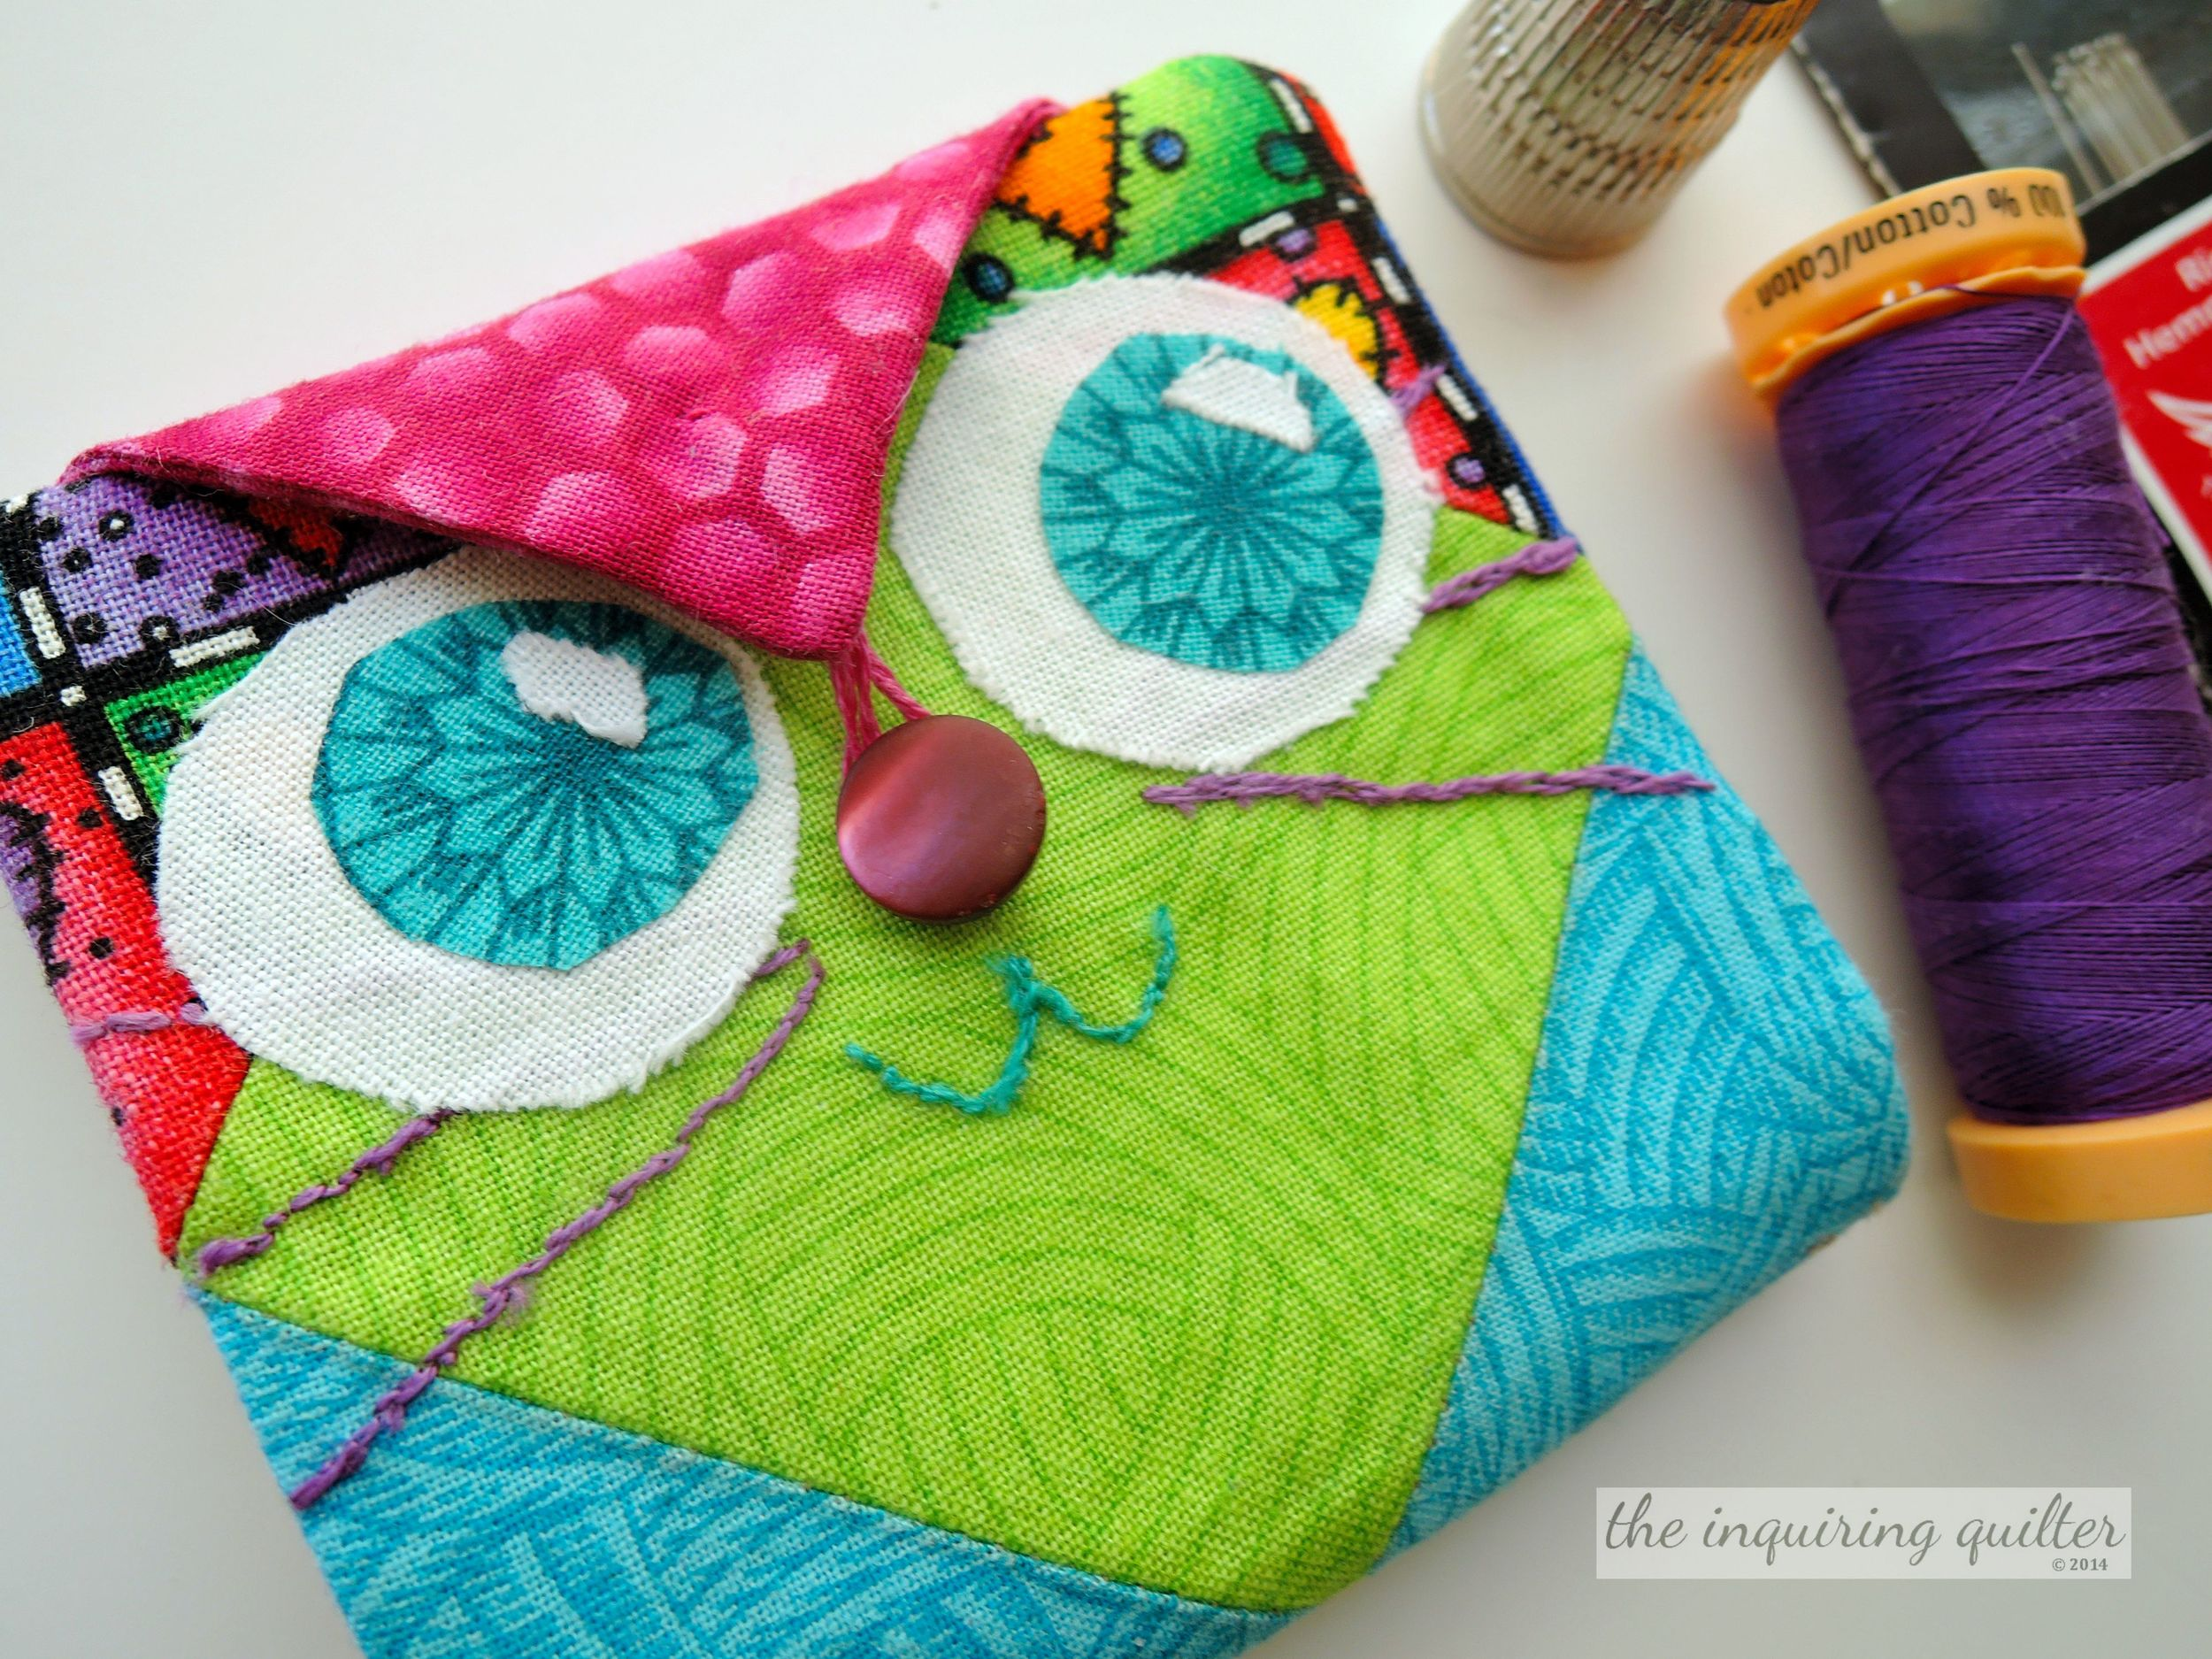 Day Five: Kitty Cat Fabric Needle Case